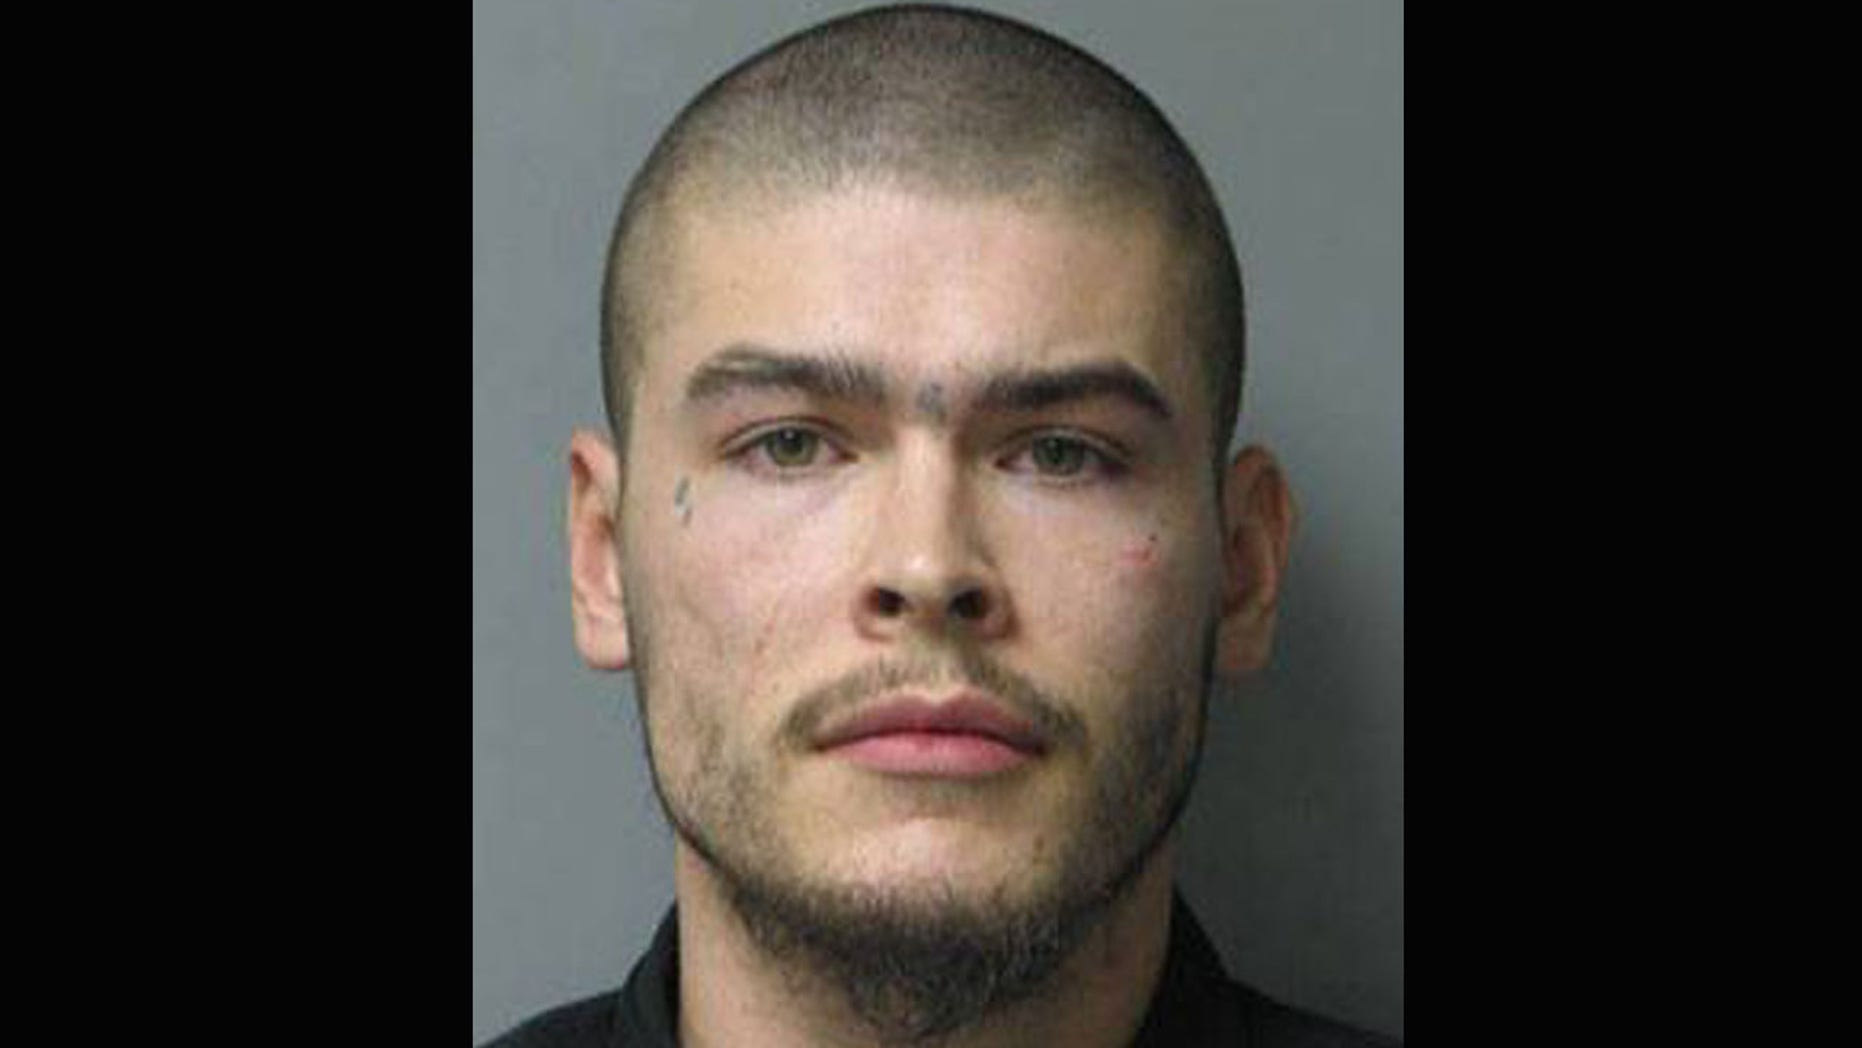 David Watson was captured Wednesday night after nearly a week on the run.